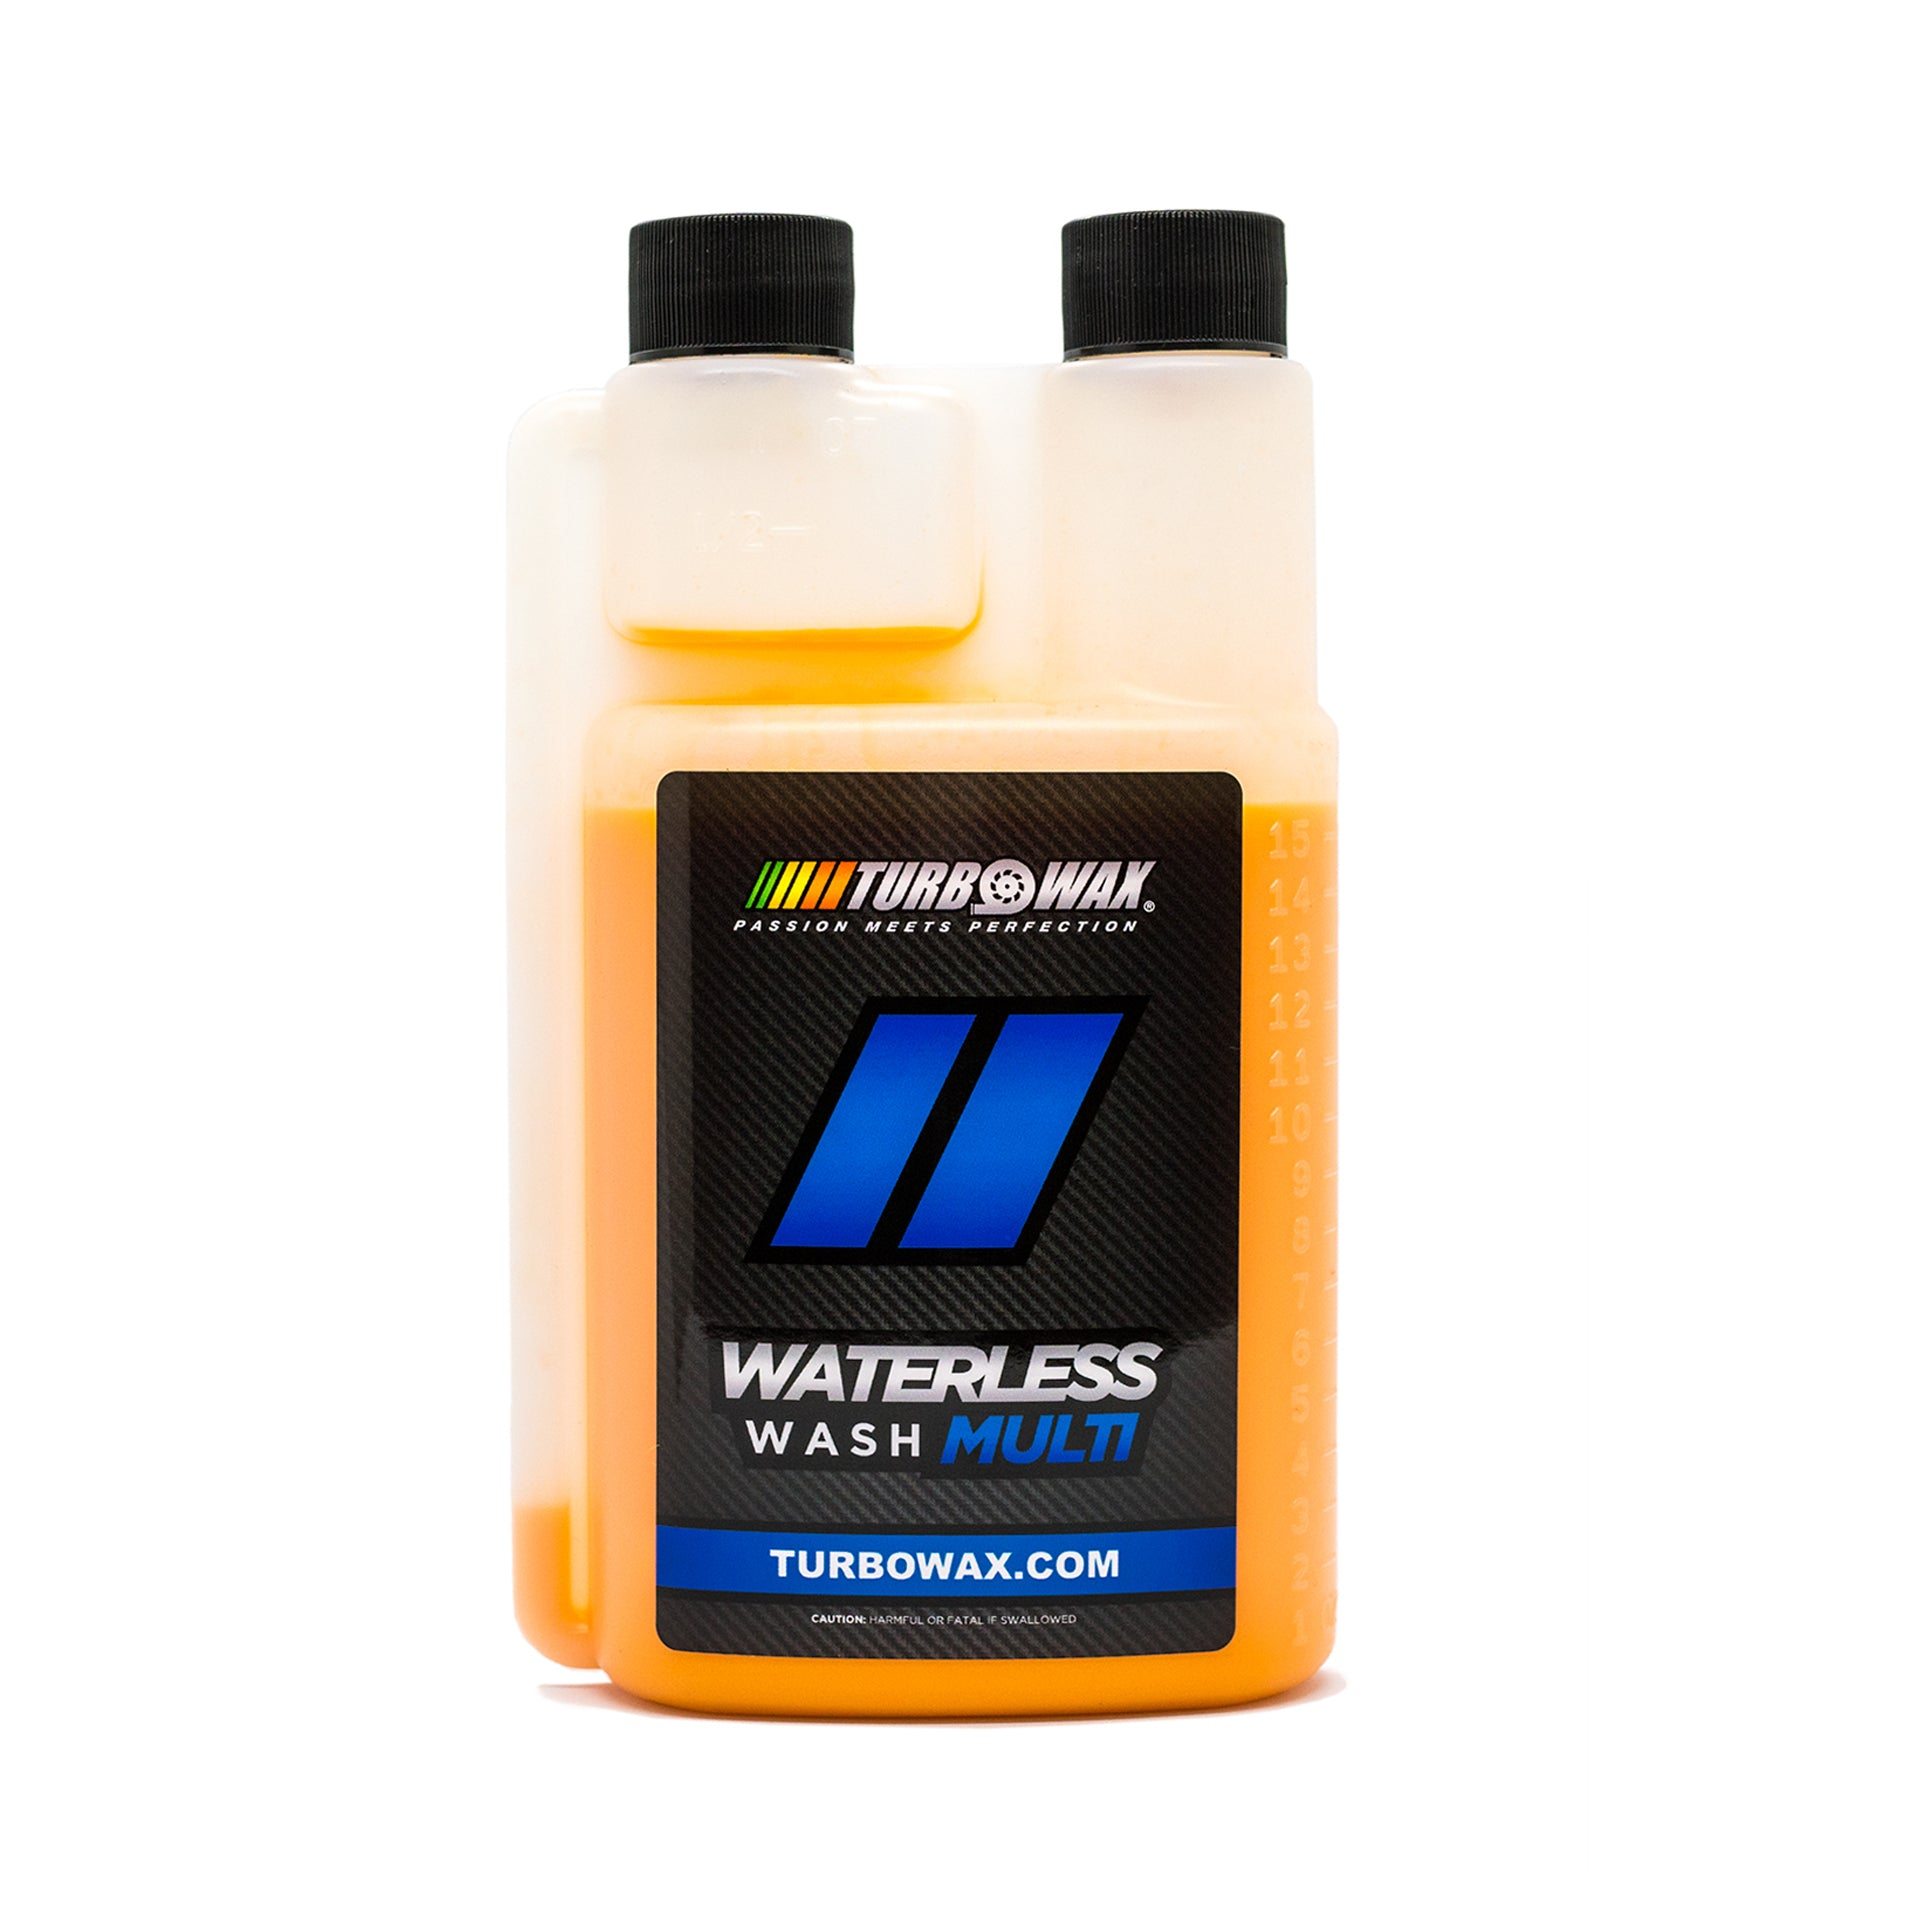 Turbo Wax Waterless Wash - Turbo Wax Store